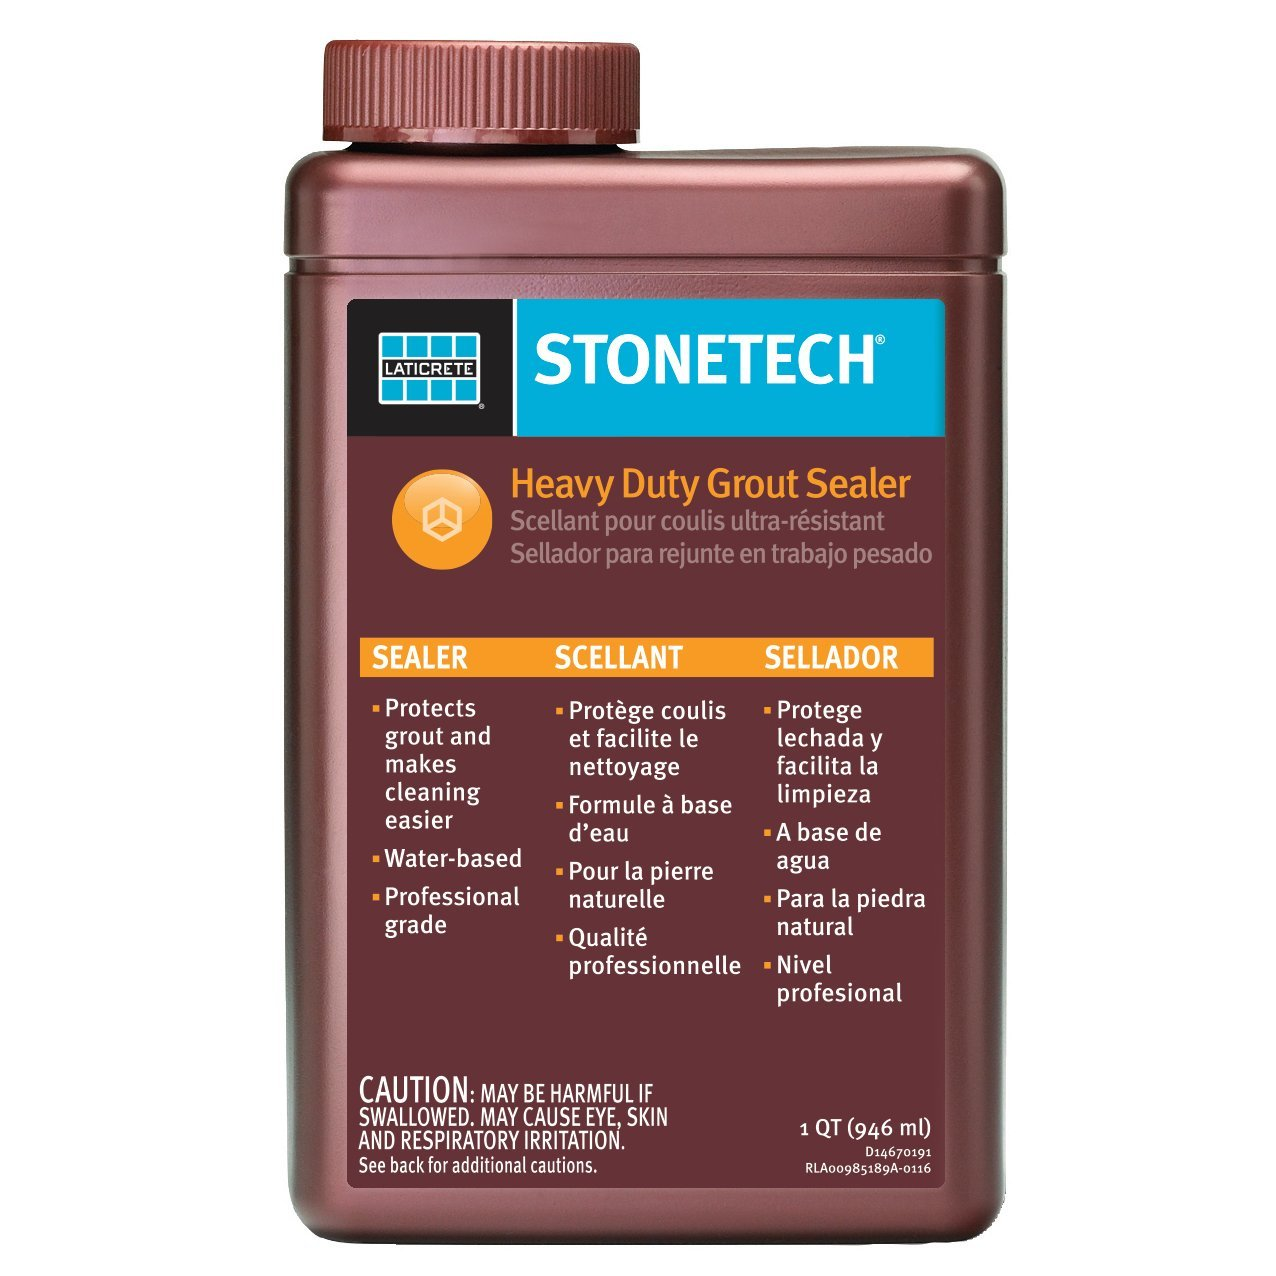 Laticrete Stonetech Professional Heavy Duty Grout Sealer For Ceramic